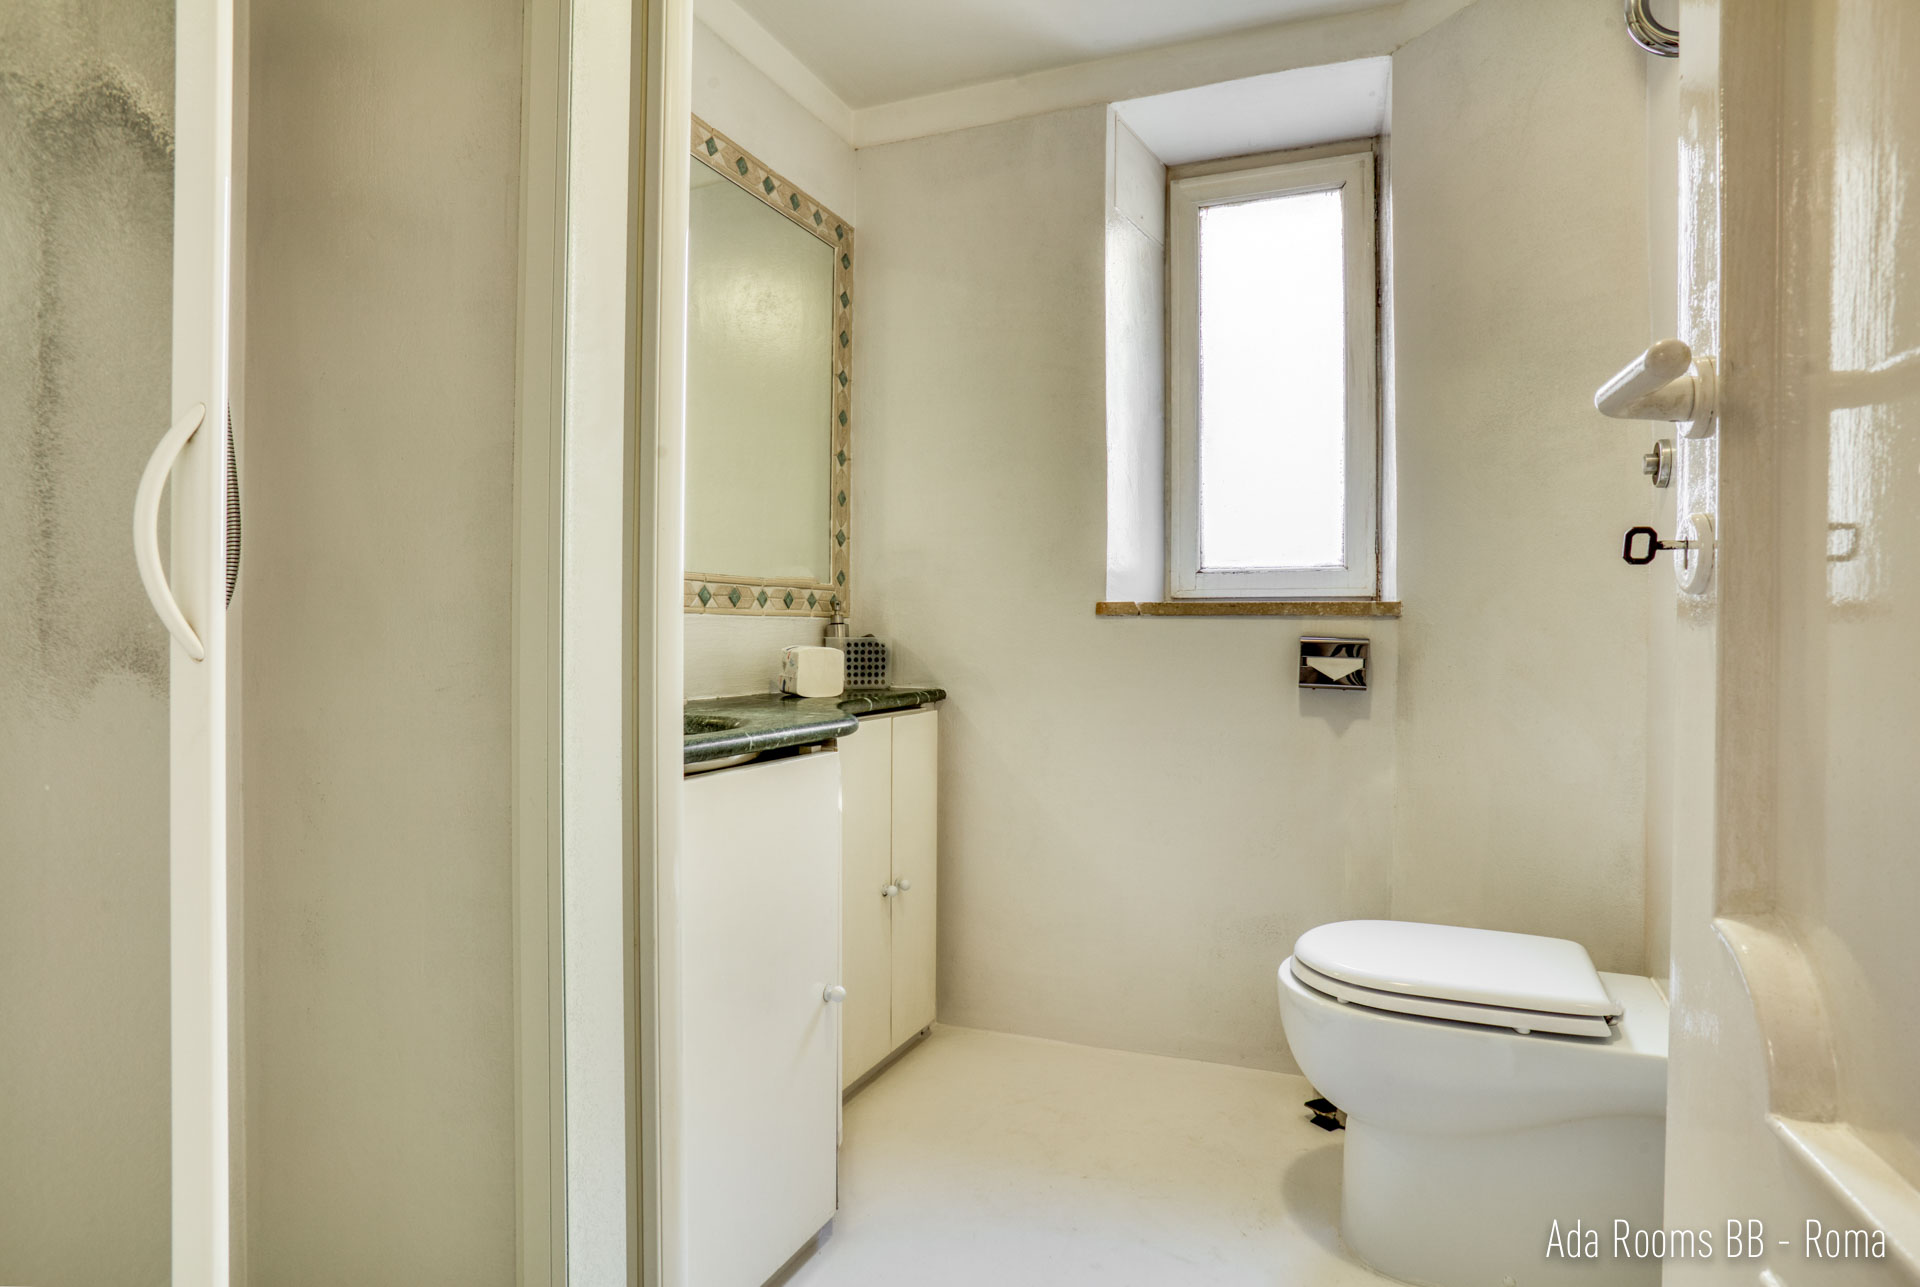 ada-rooms-roma-23